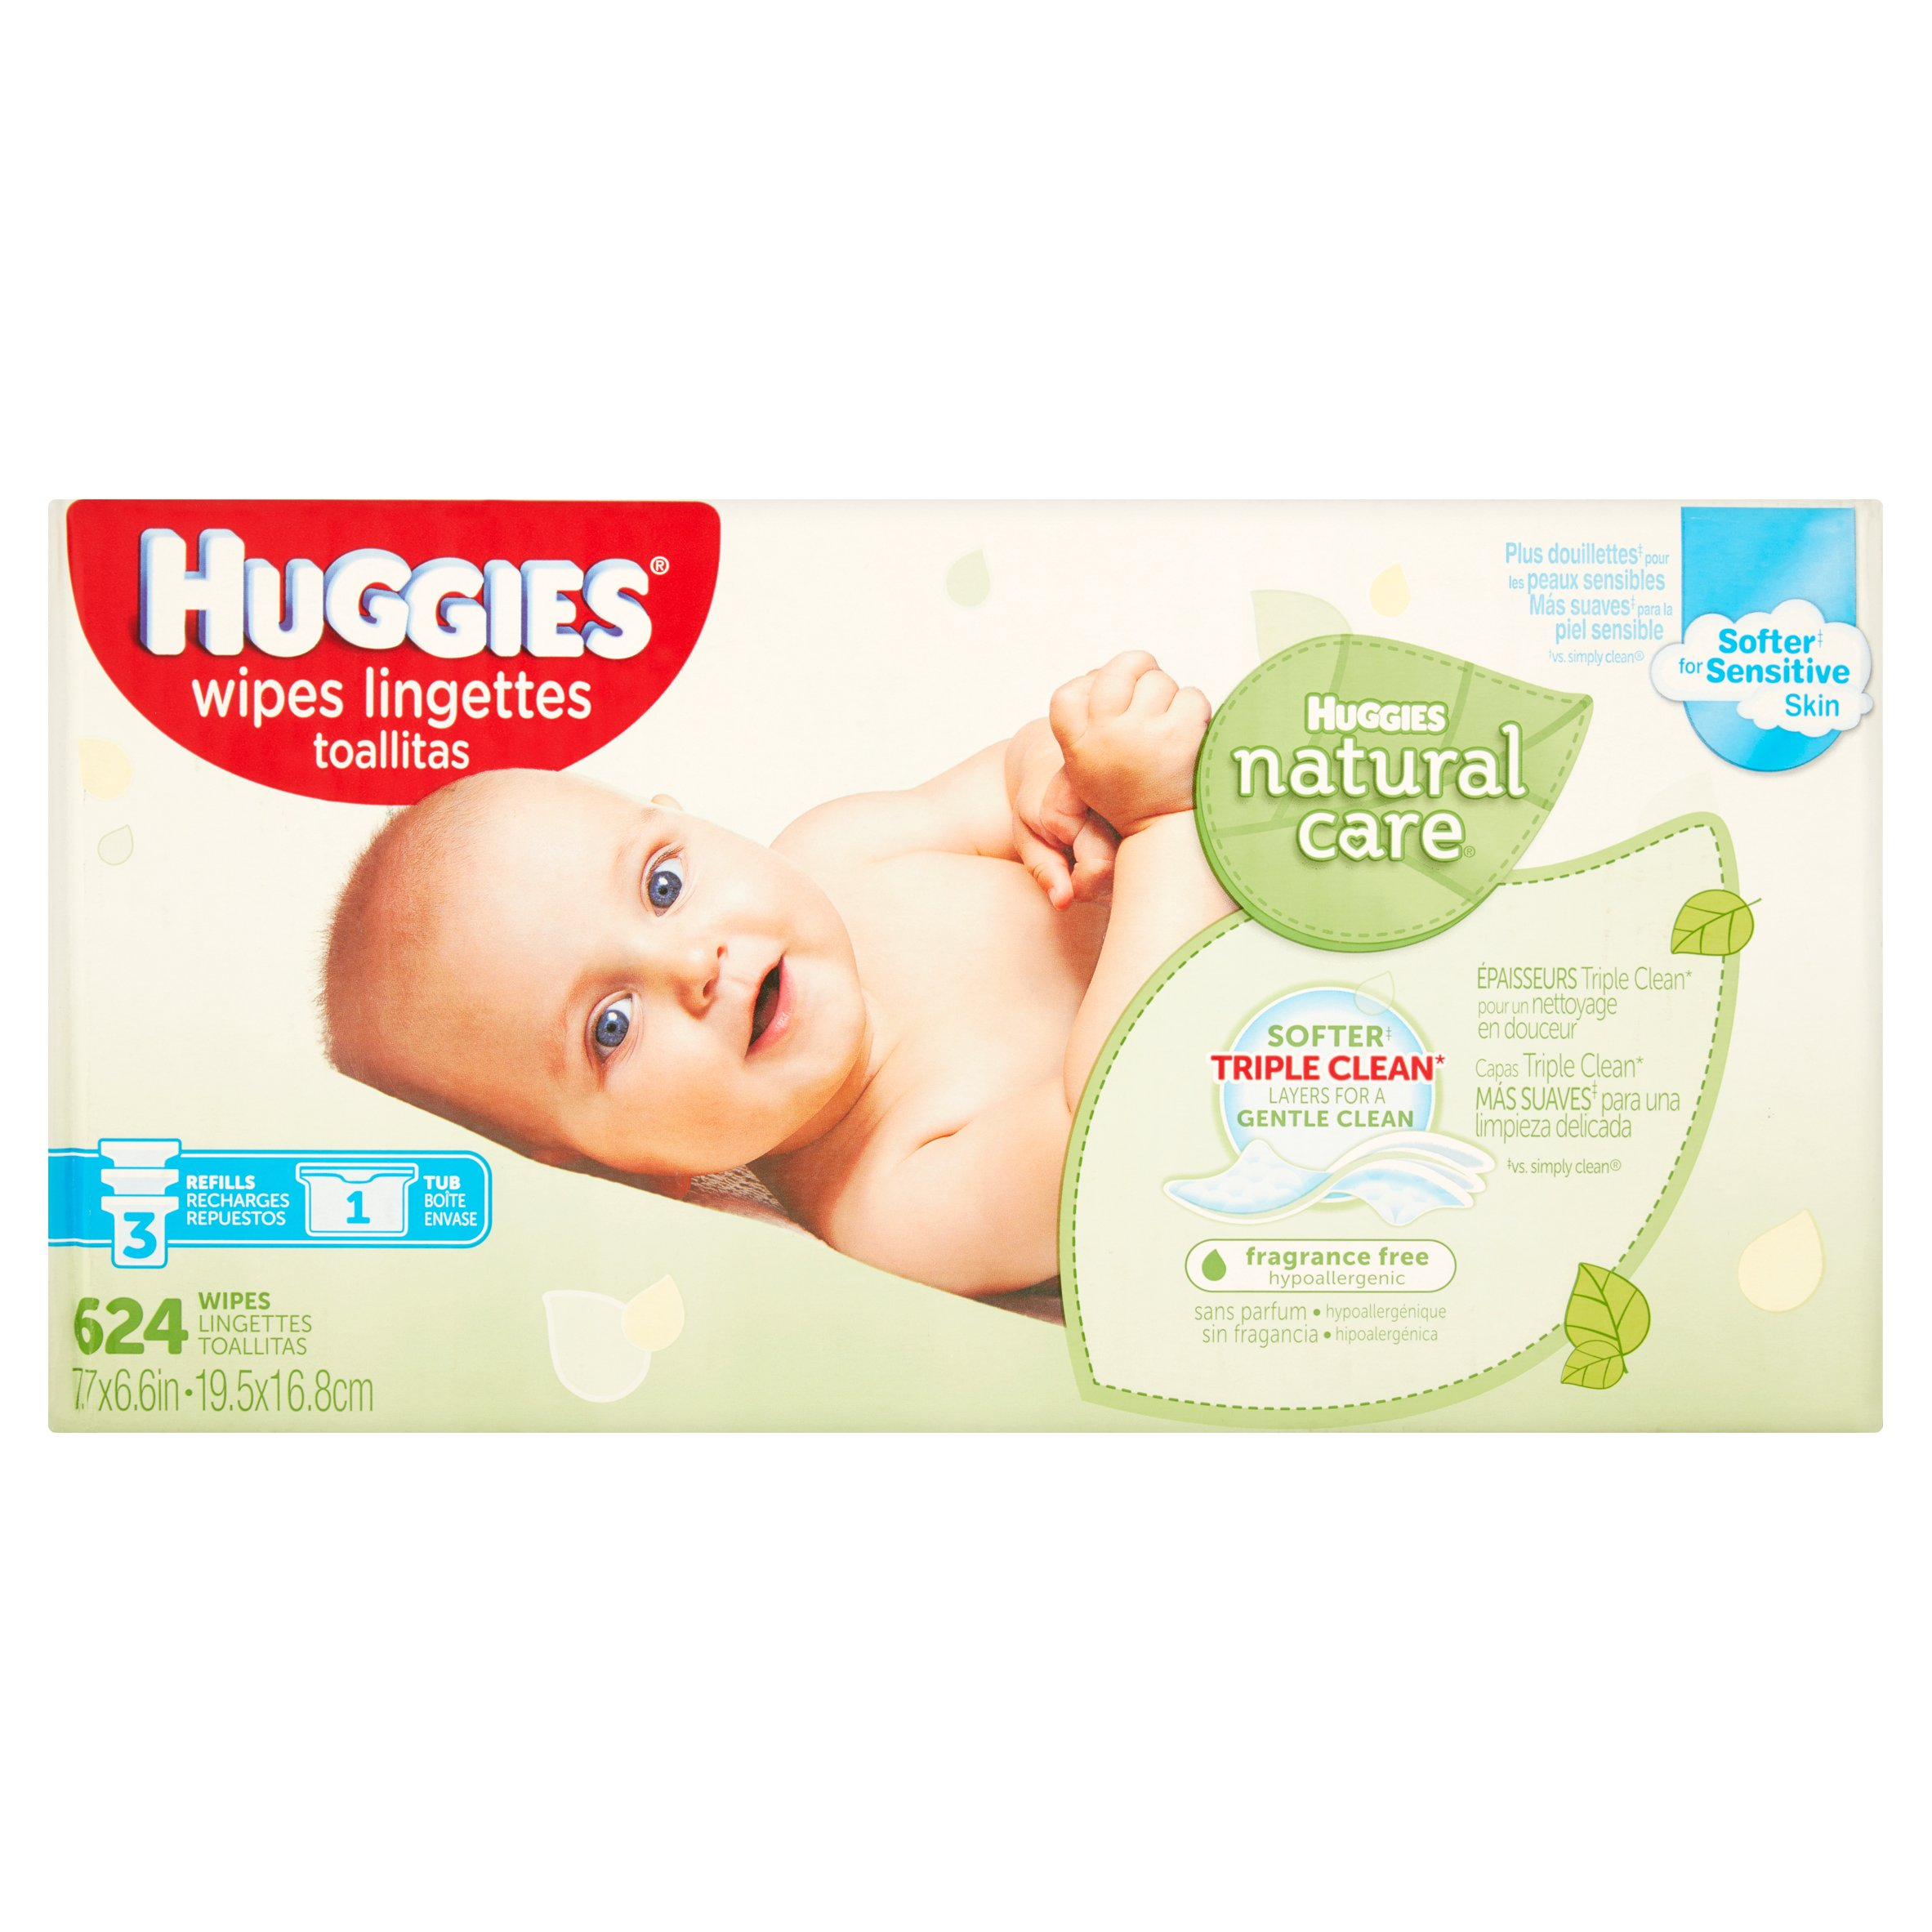 Huggies Natural Care Fragrance Free Baby